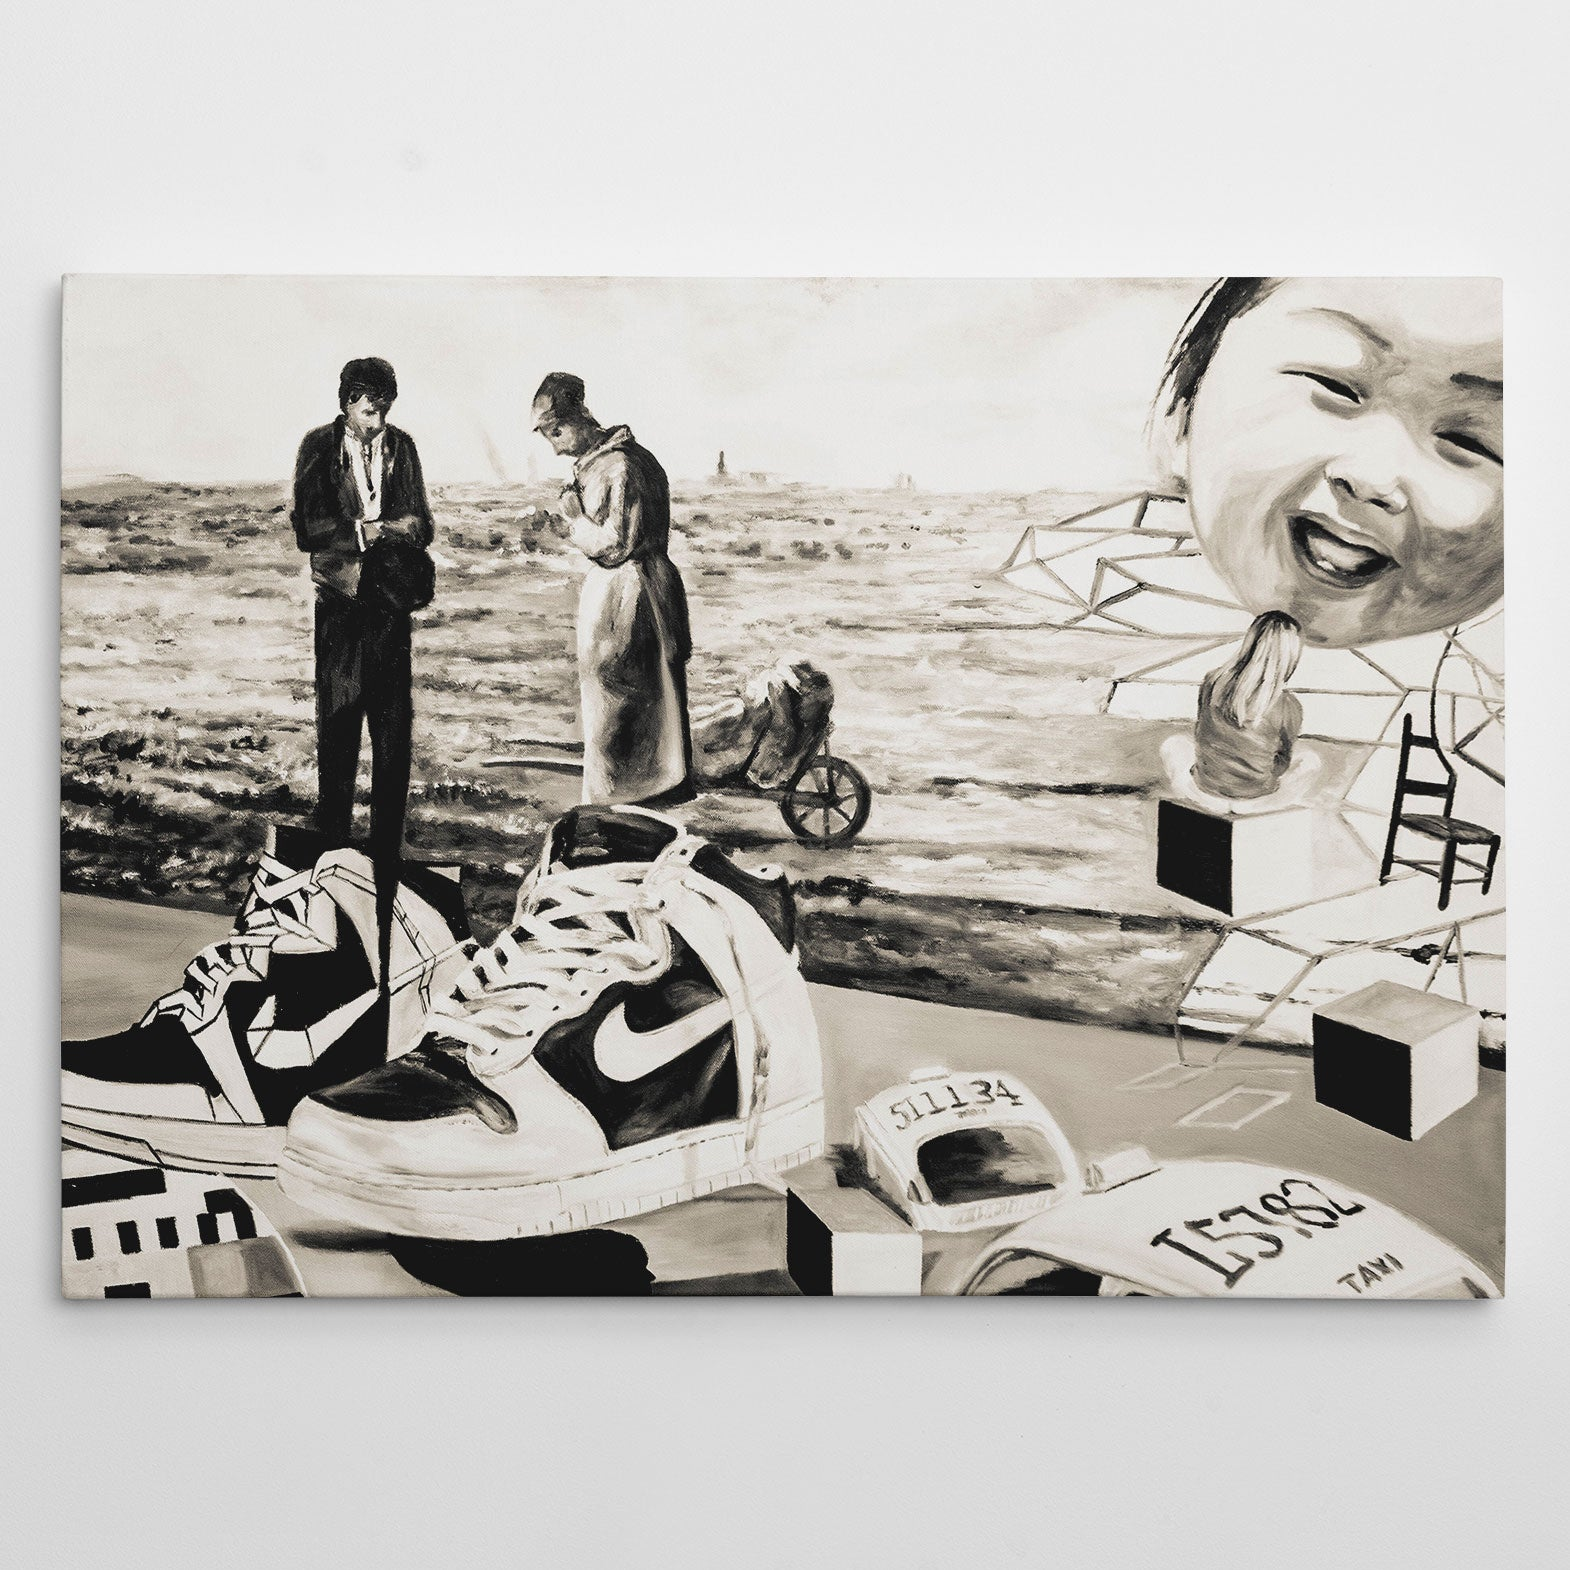 Street art style canvas print of a black and white sneakers painting, with arts mixture